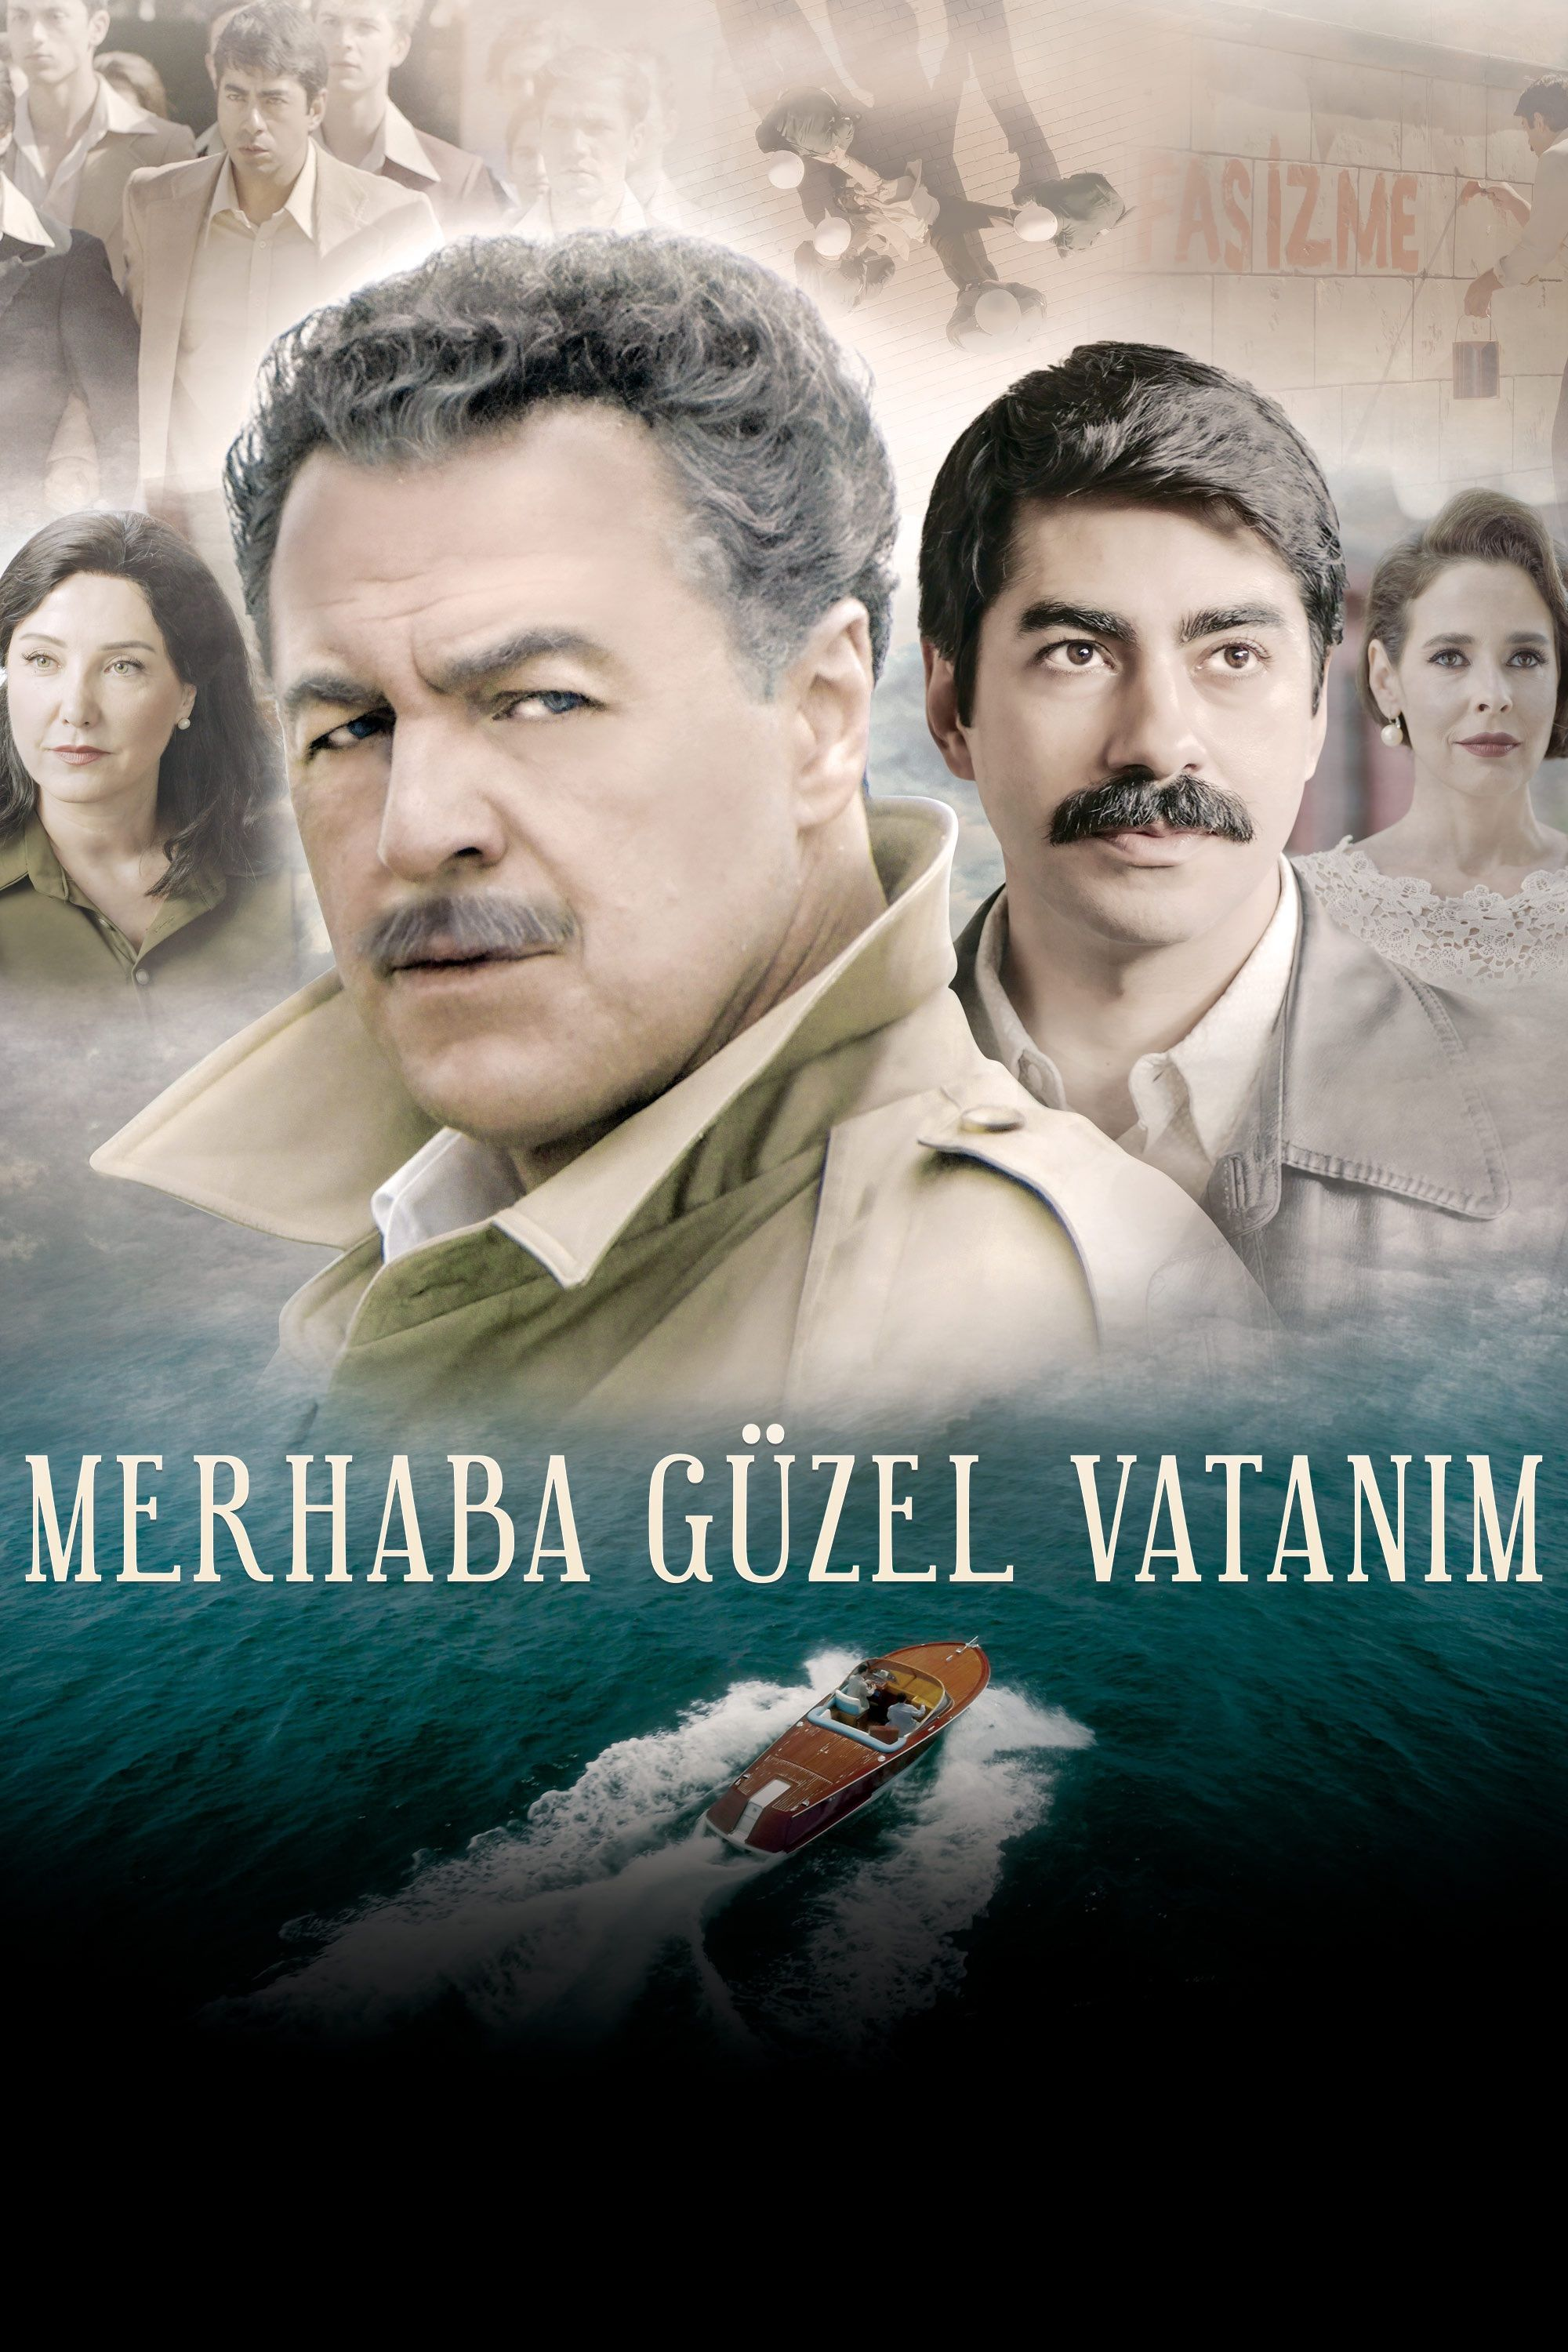 Merhaba Güzel Vatanım in 2020 Movie synopsis, Box office